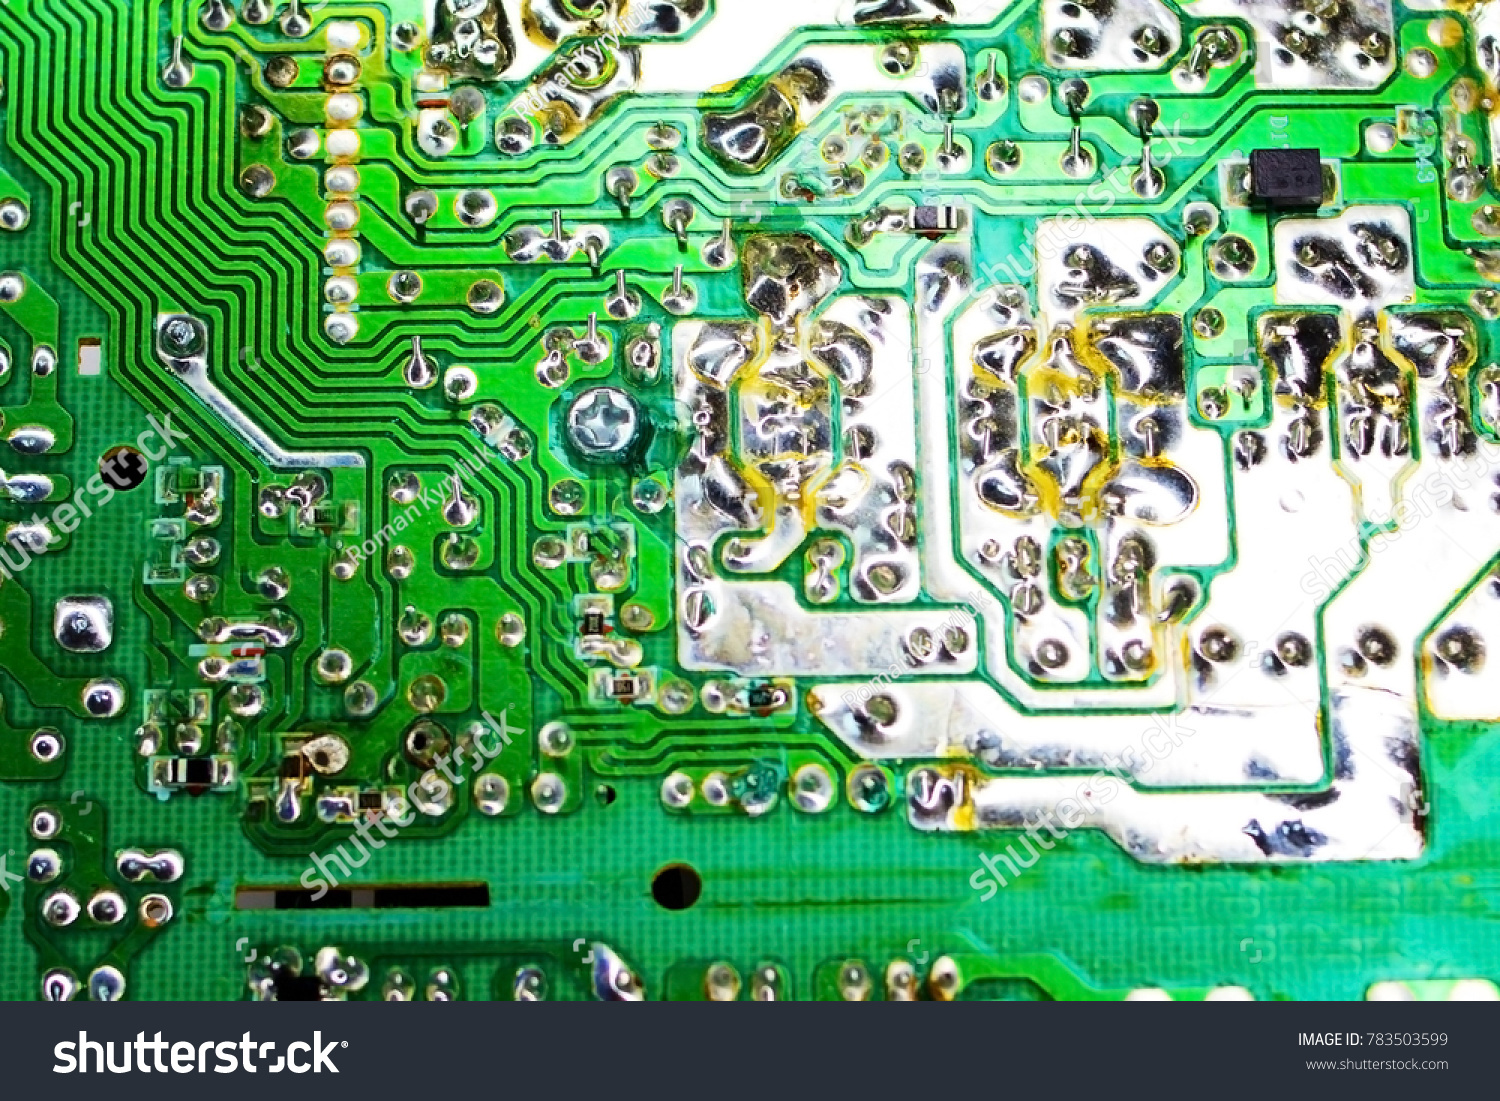 Circuit Board Electronic Components Old Technology Stock Photo Edit Green Computer With Electronics And Of The Past In